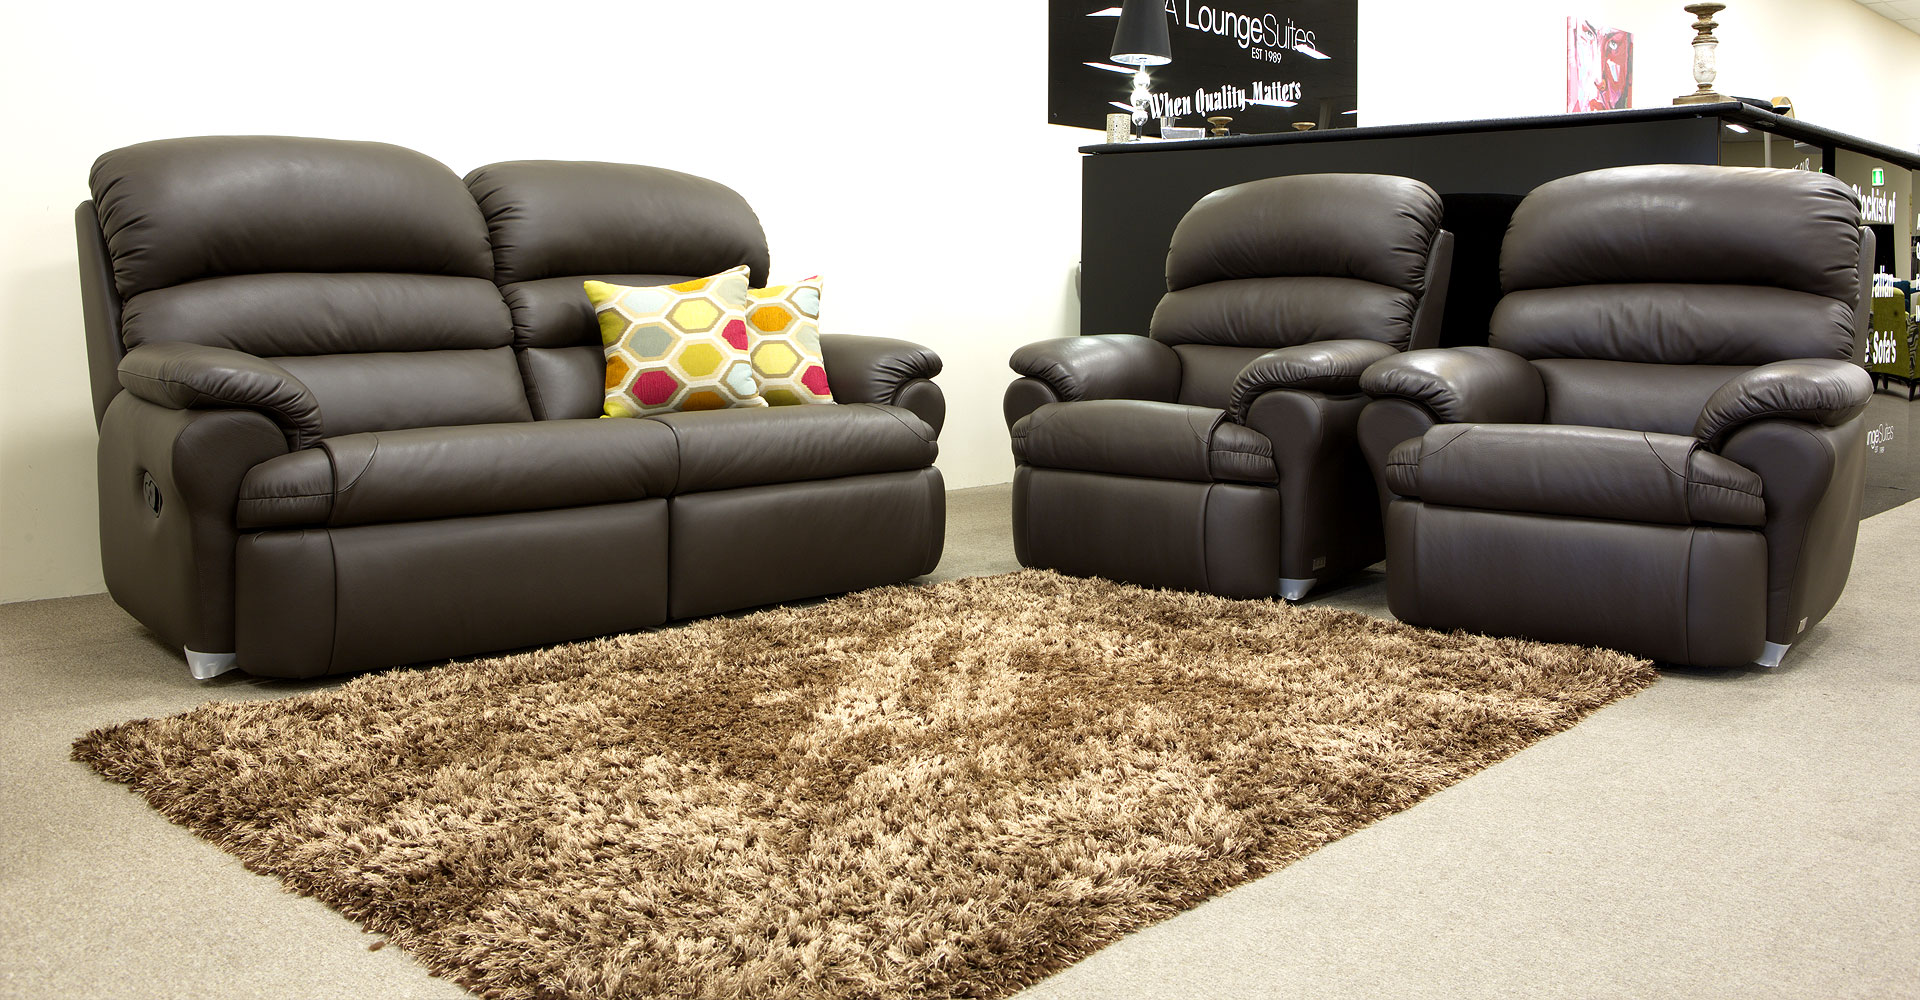 Outstanding Sofa Adelaide Feedsfloor Caraccident5 Cool Chair Designs And Ideas Caraccident5Info